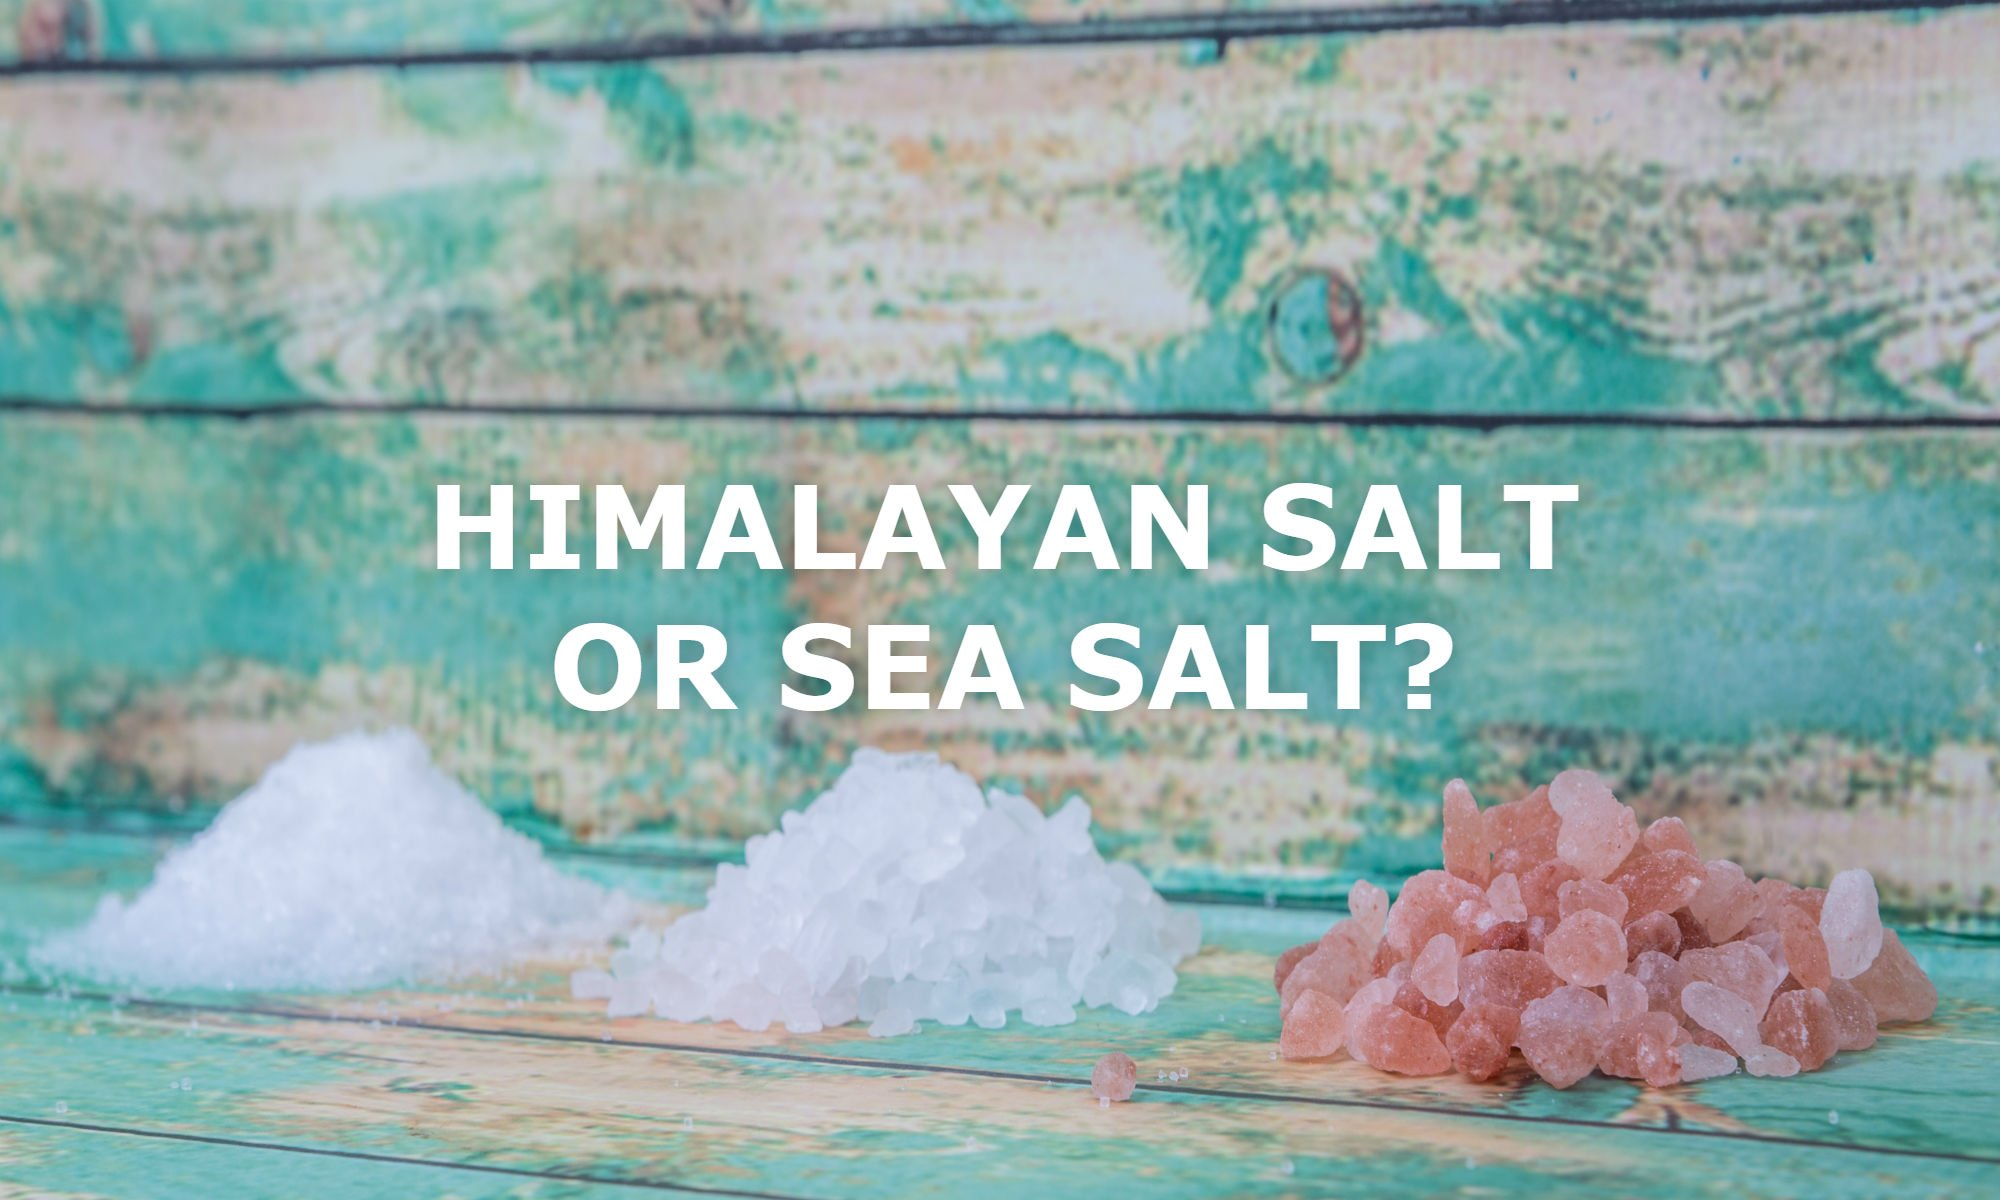 Himalayan Salt Or Sea Salt?